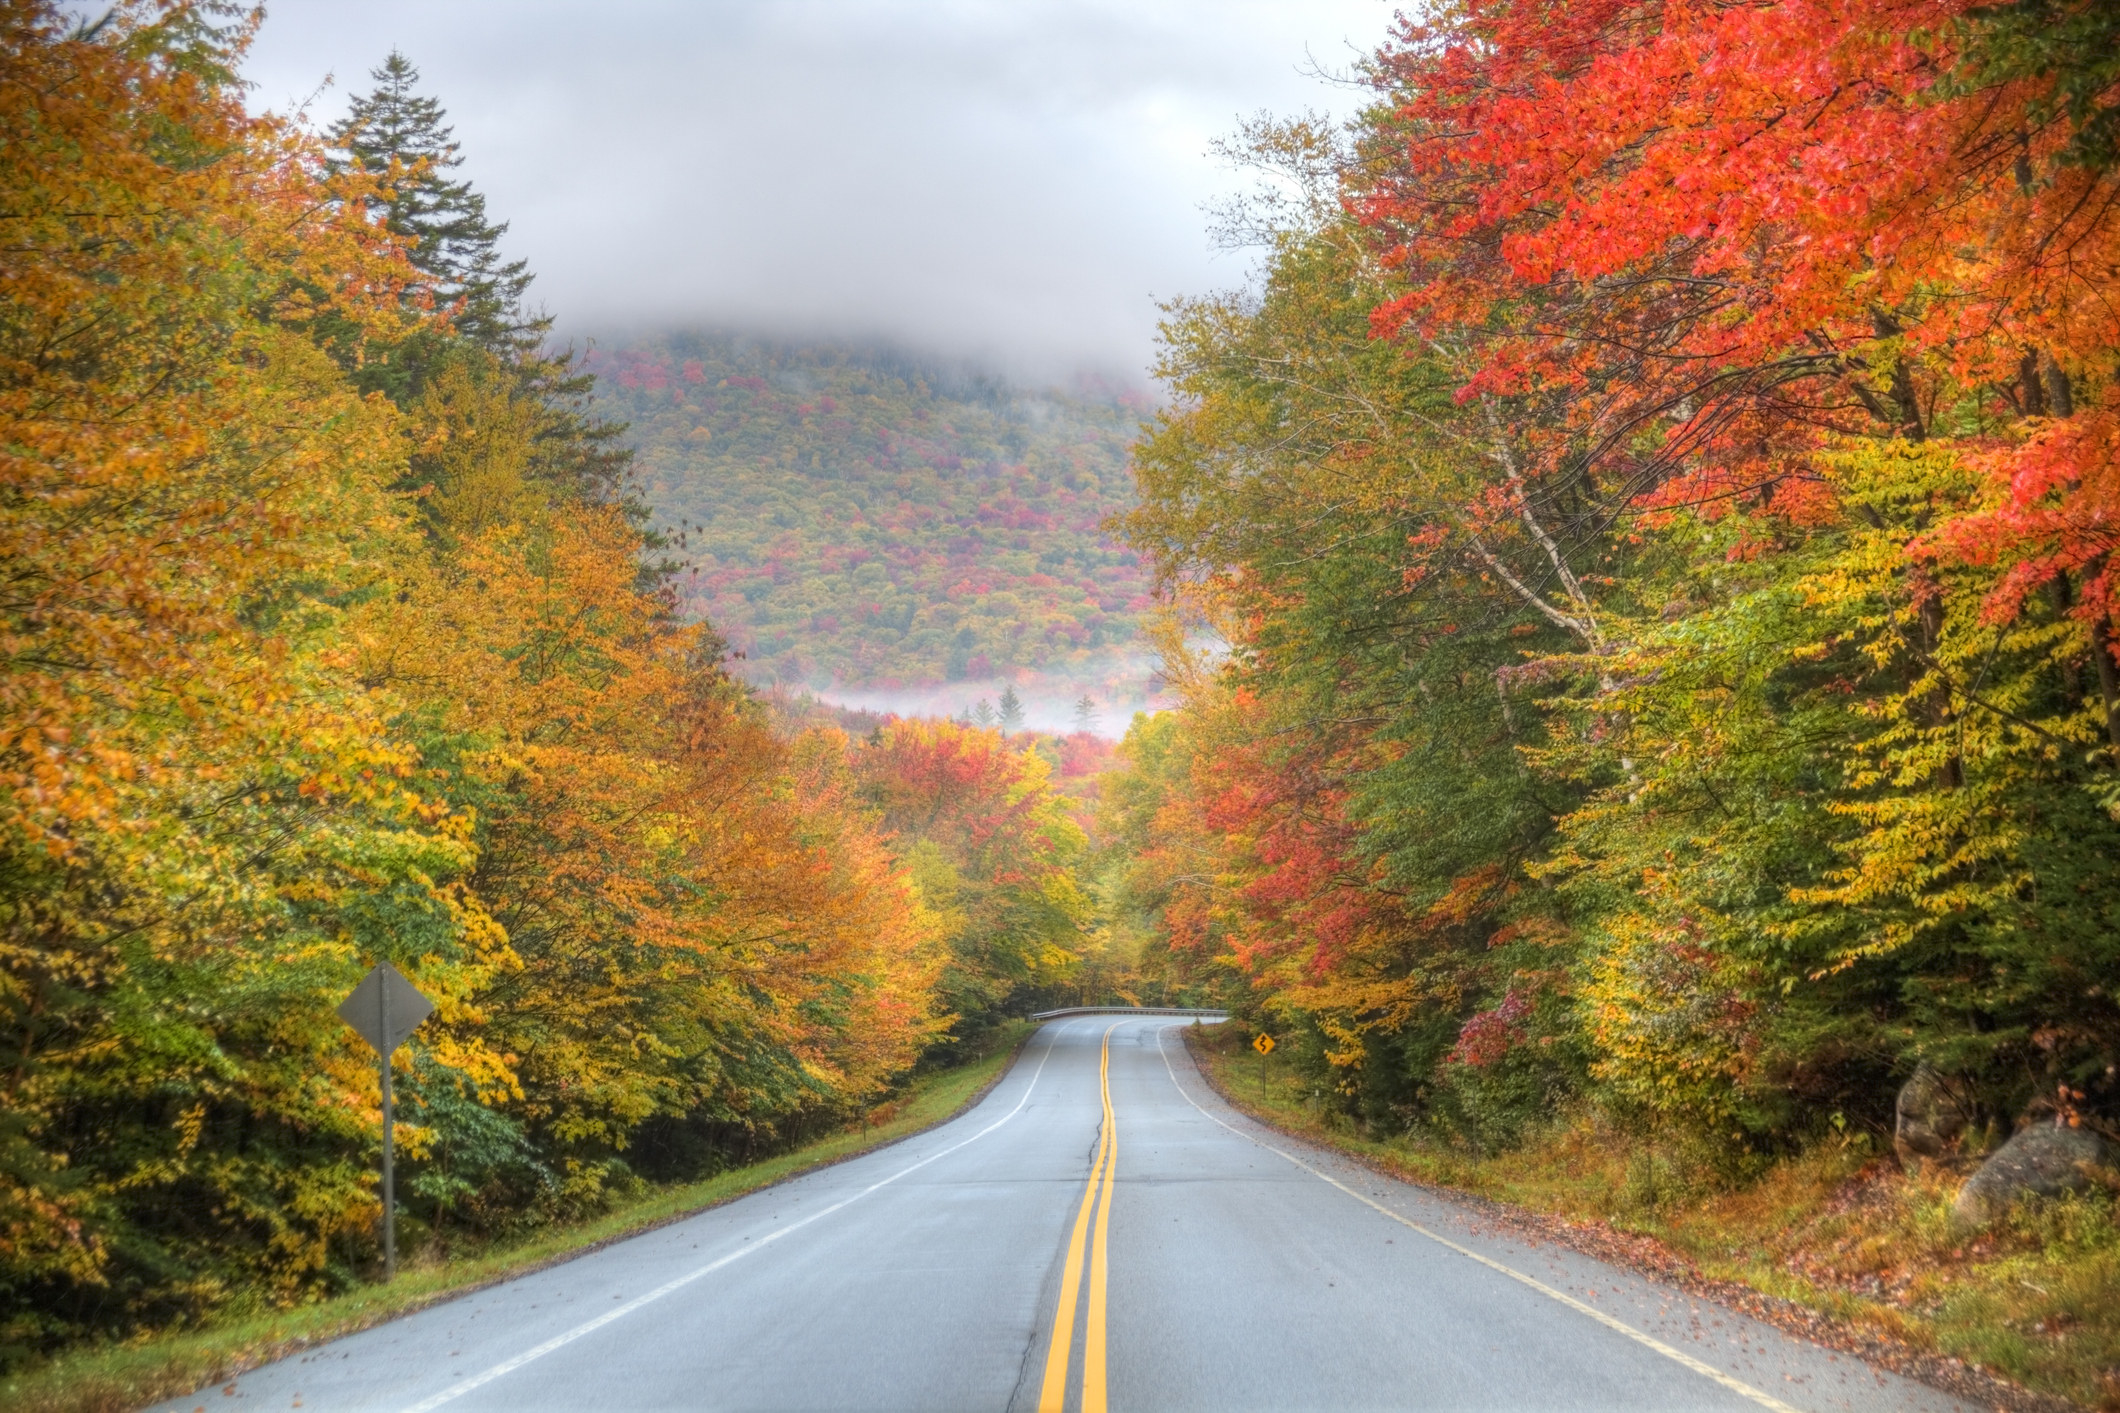 brightly colored fall foliage surrounds the highway